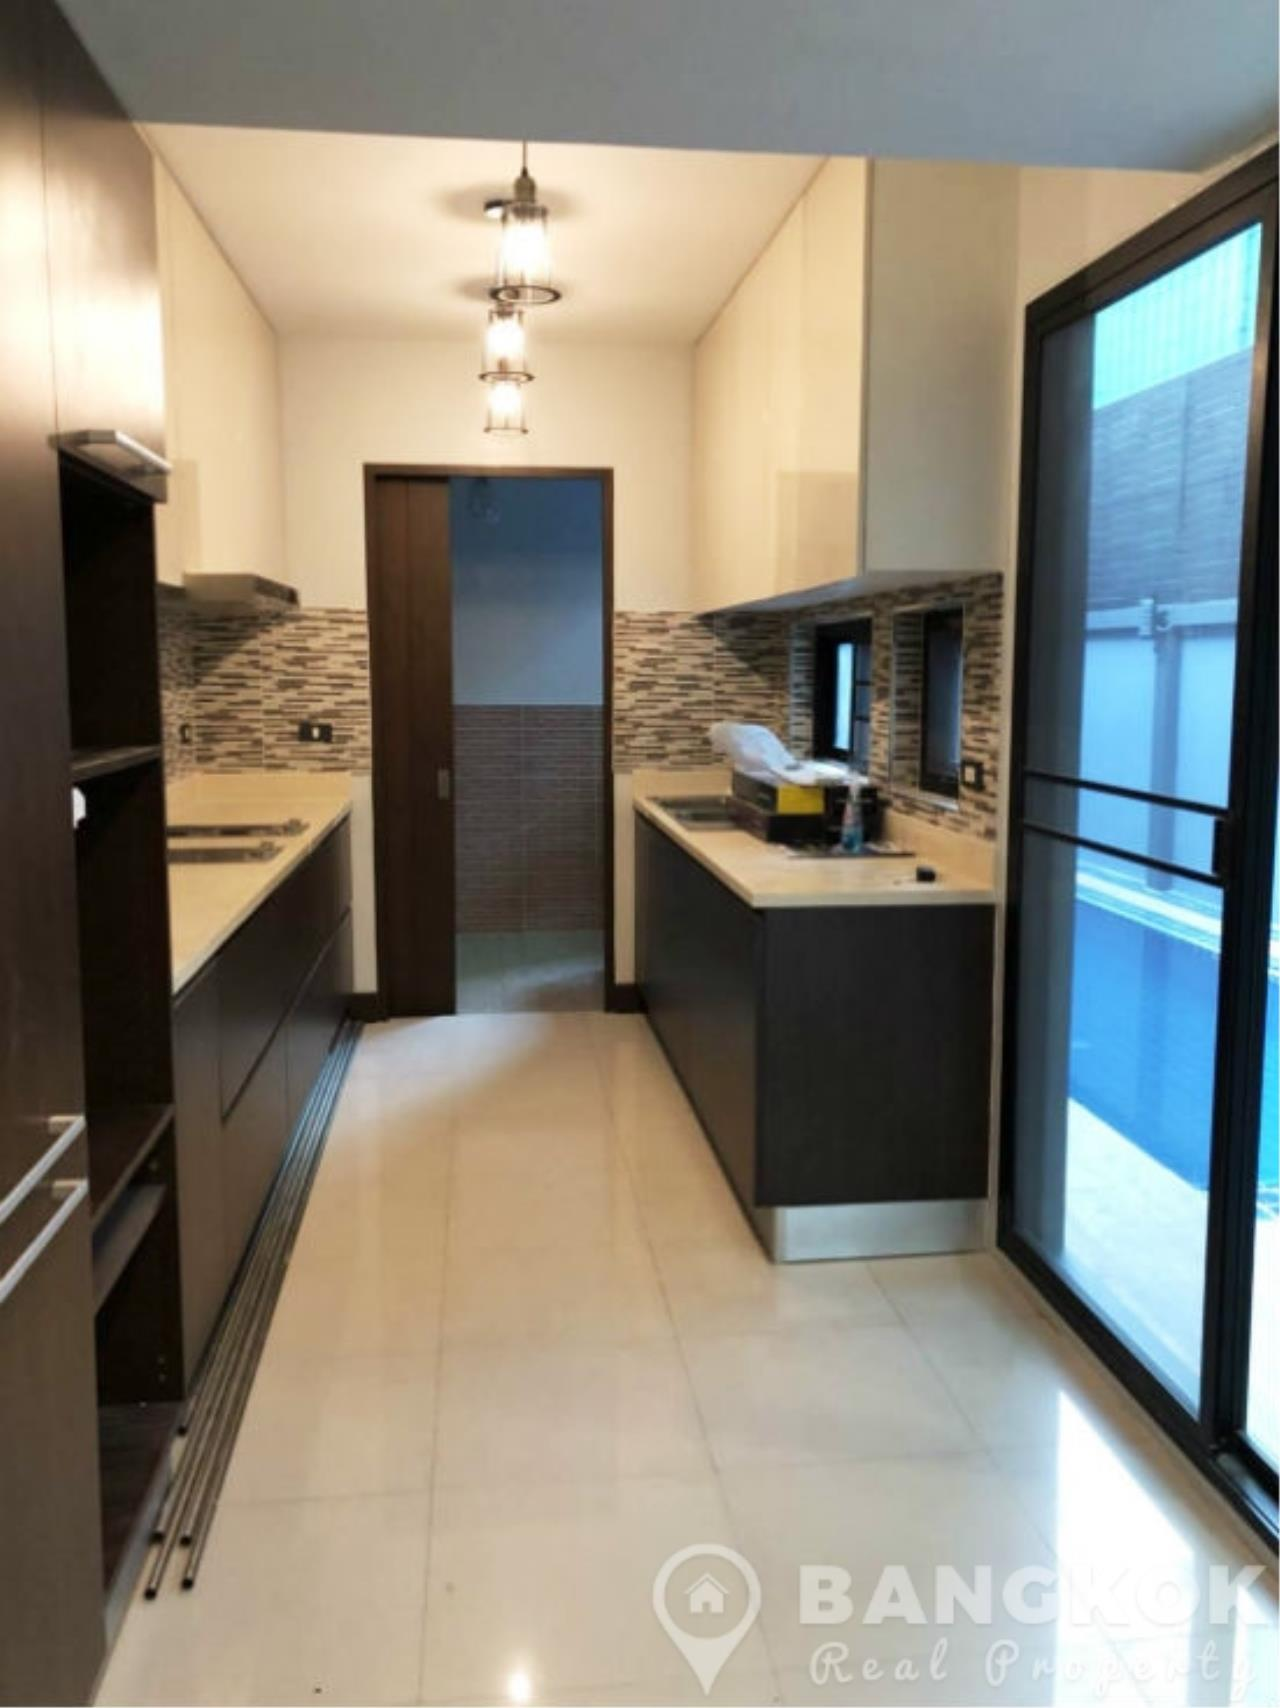 Bangkok Real Property Agency's Modern Detached House in Thonglor 4 Beds with Private Swimming Pool 4